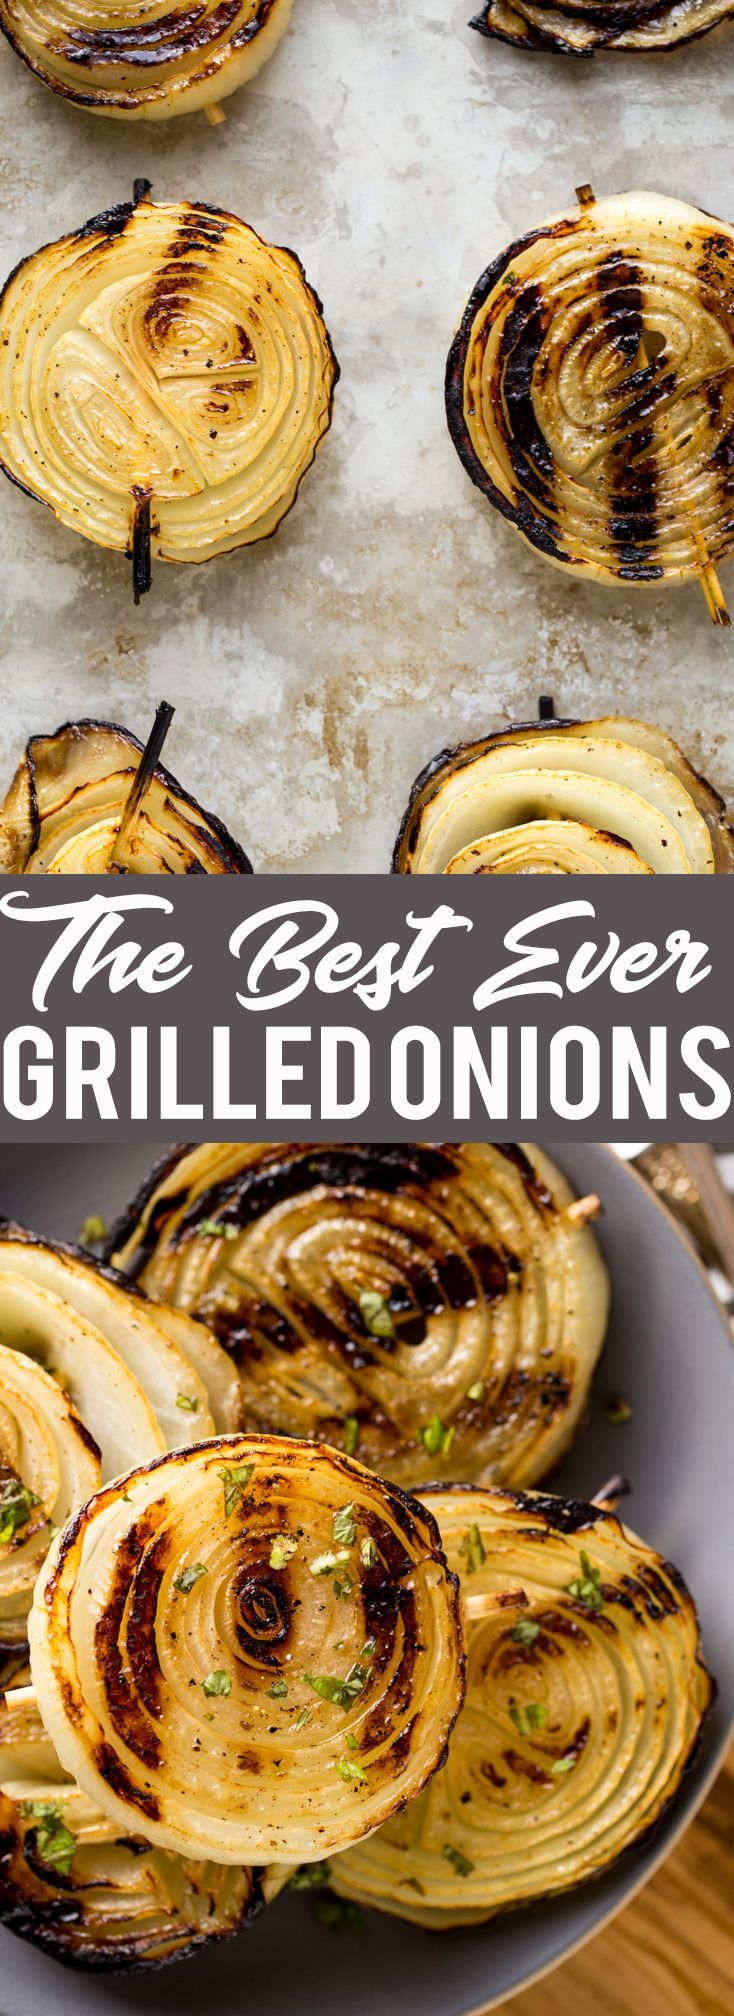 Best Ever Grilled Onions